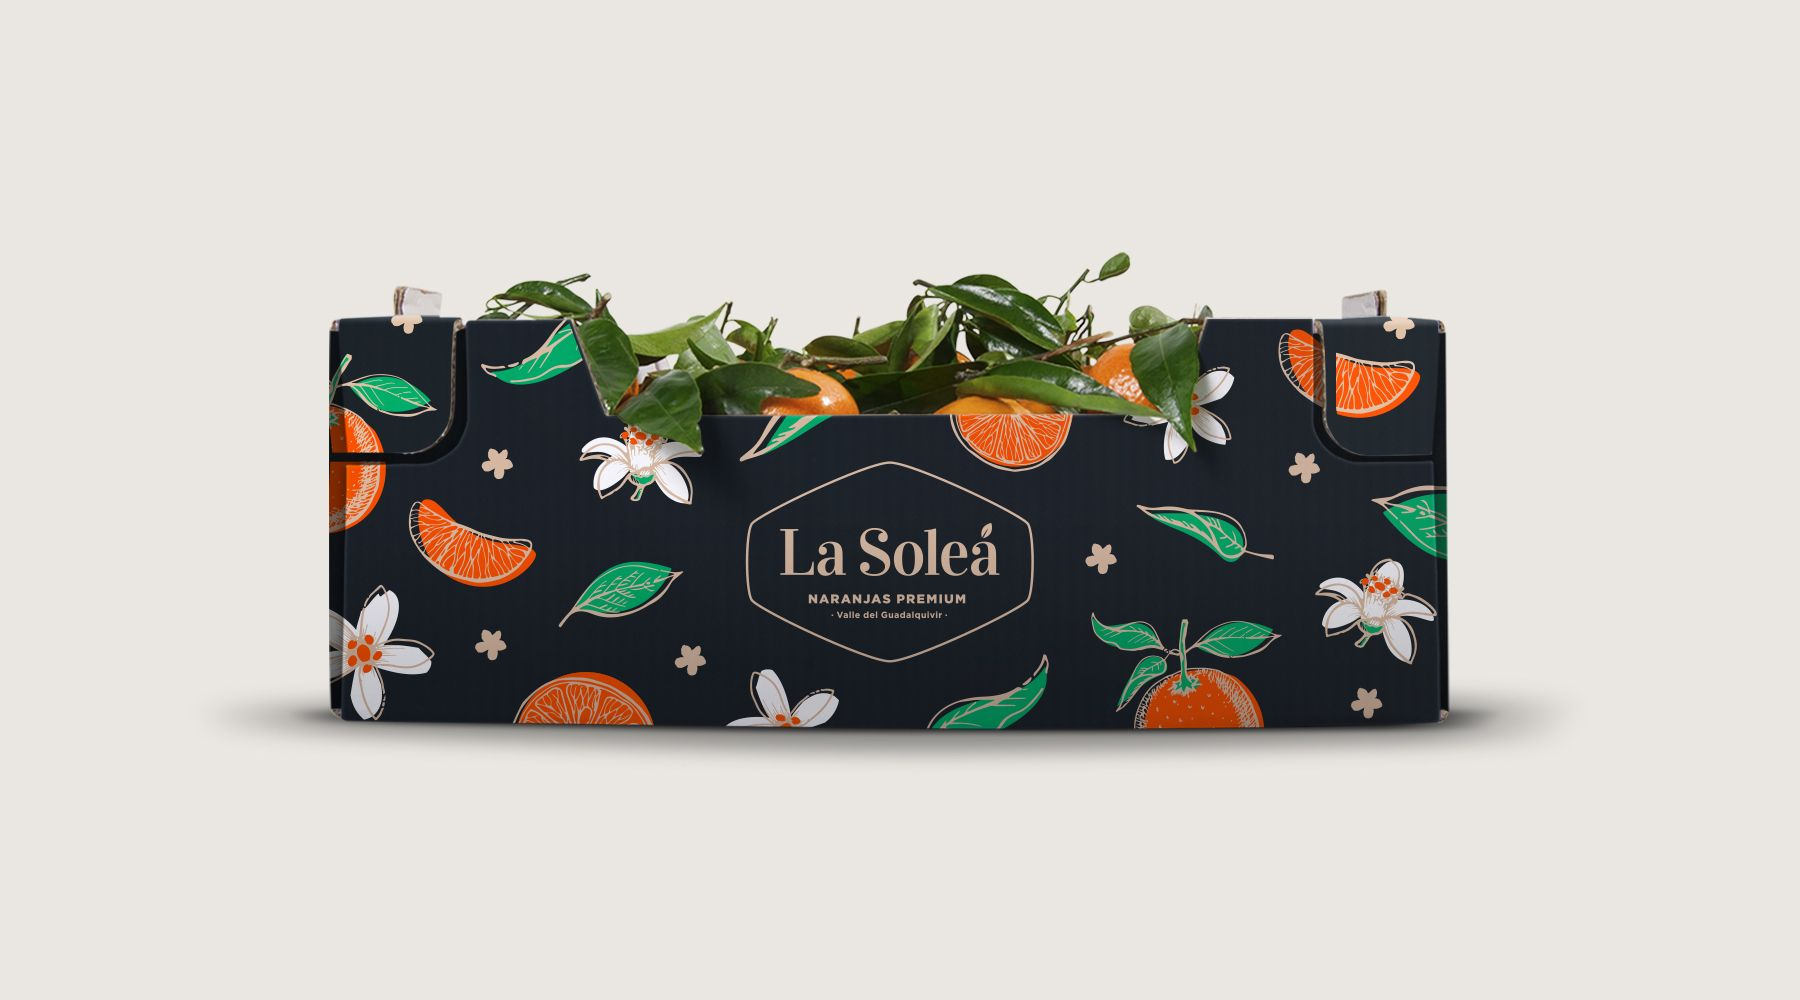 Cardboard box of oranges La Soleá